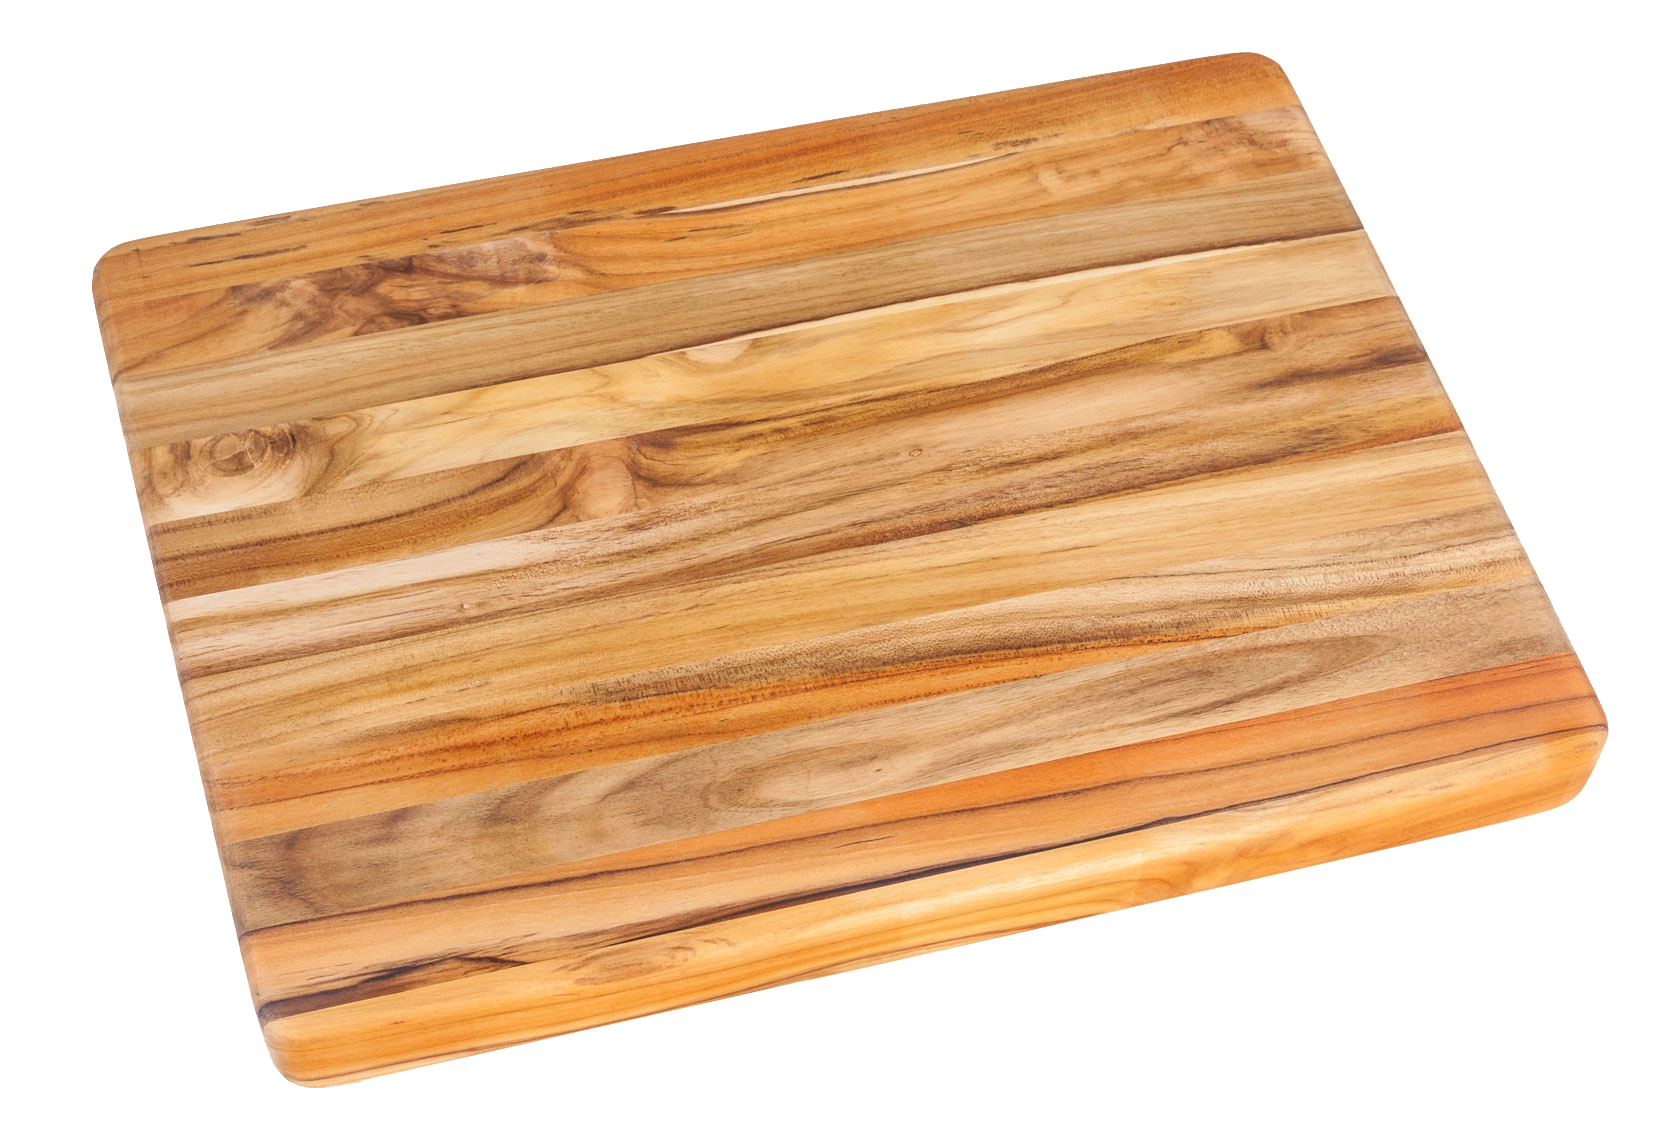 Teak Cutting Board Proteak 20x15x1 5 Edge Grain